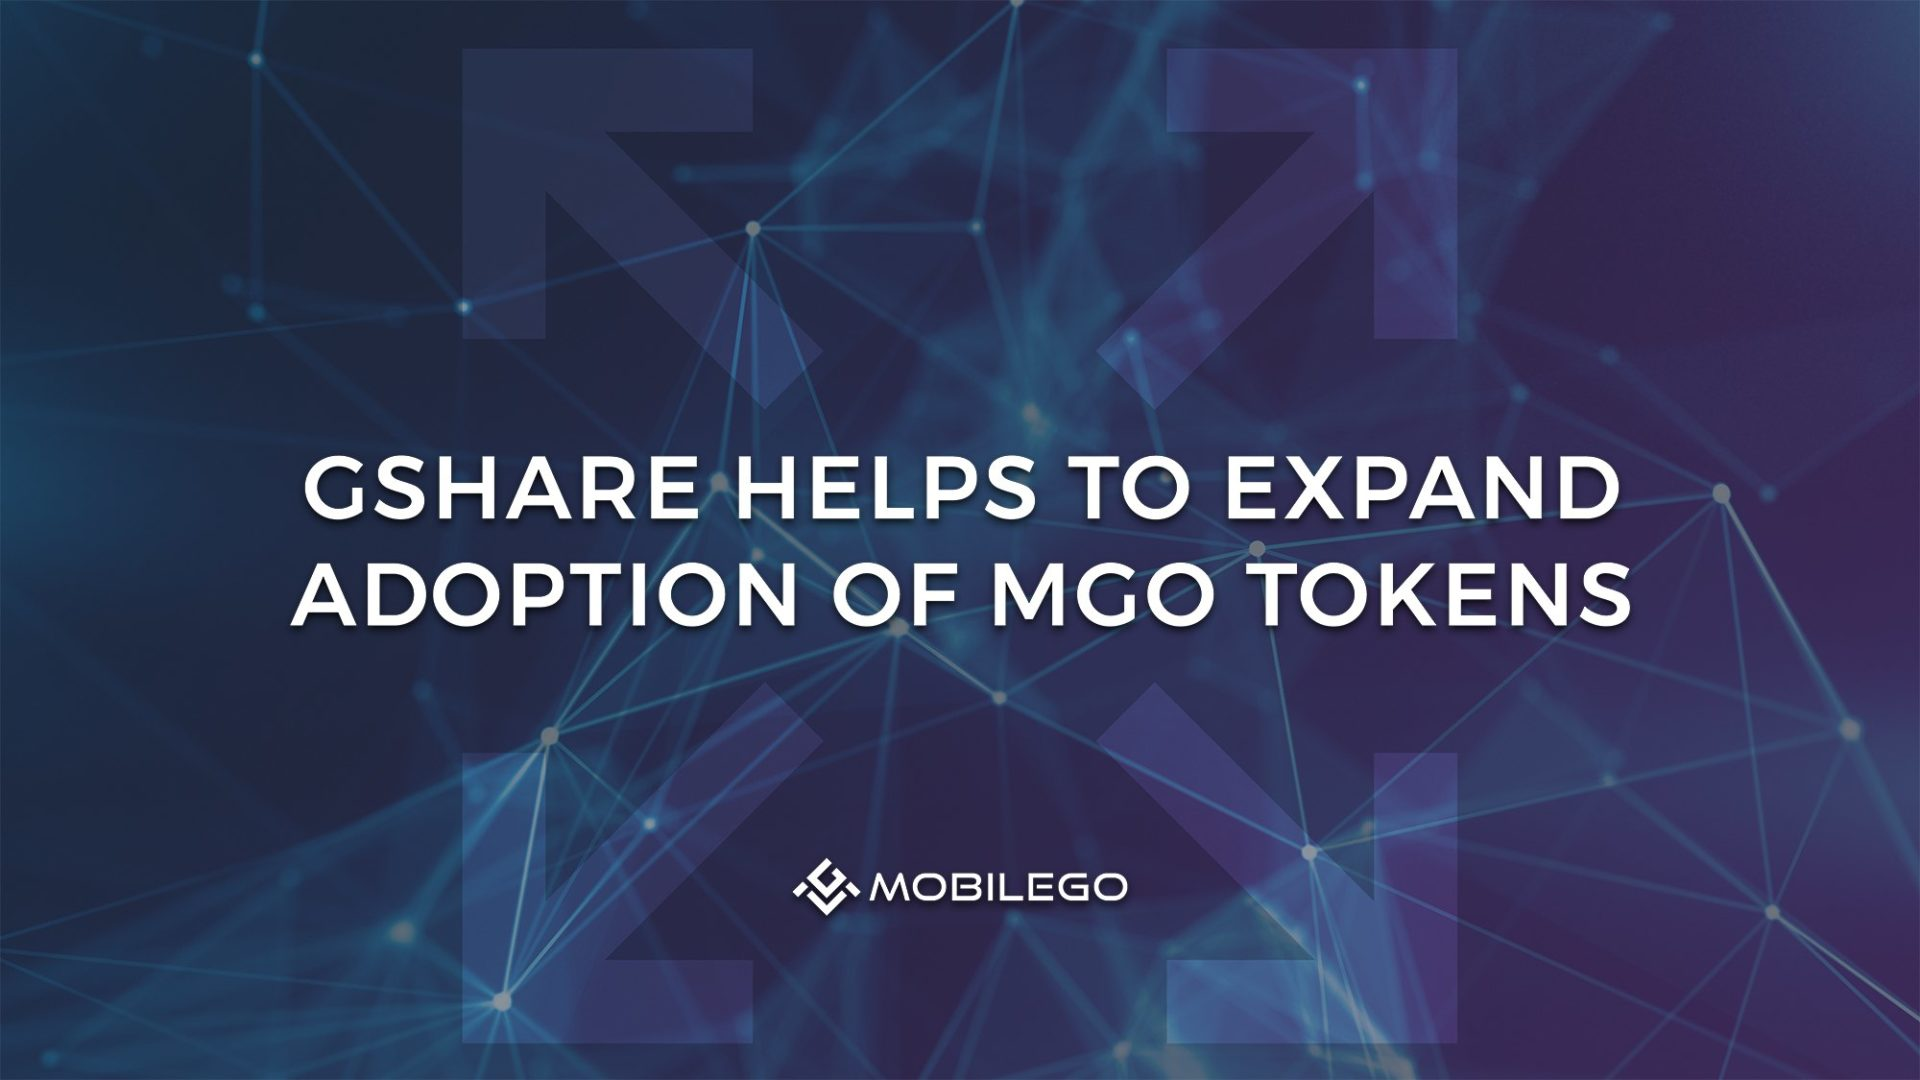 GShare helps to expand adoption of MGO tokens